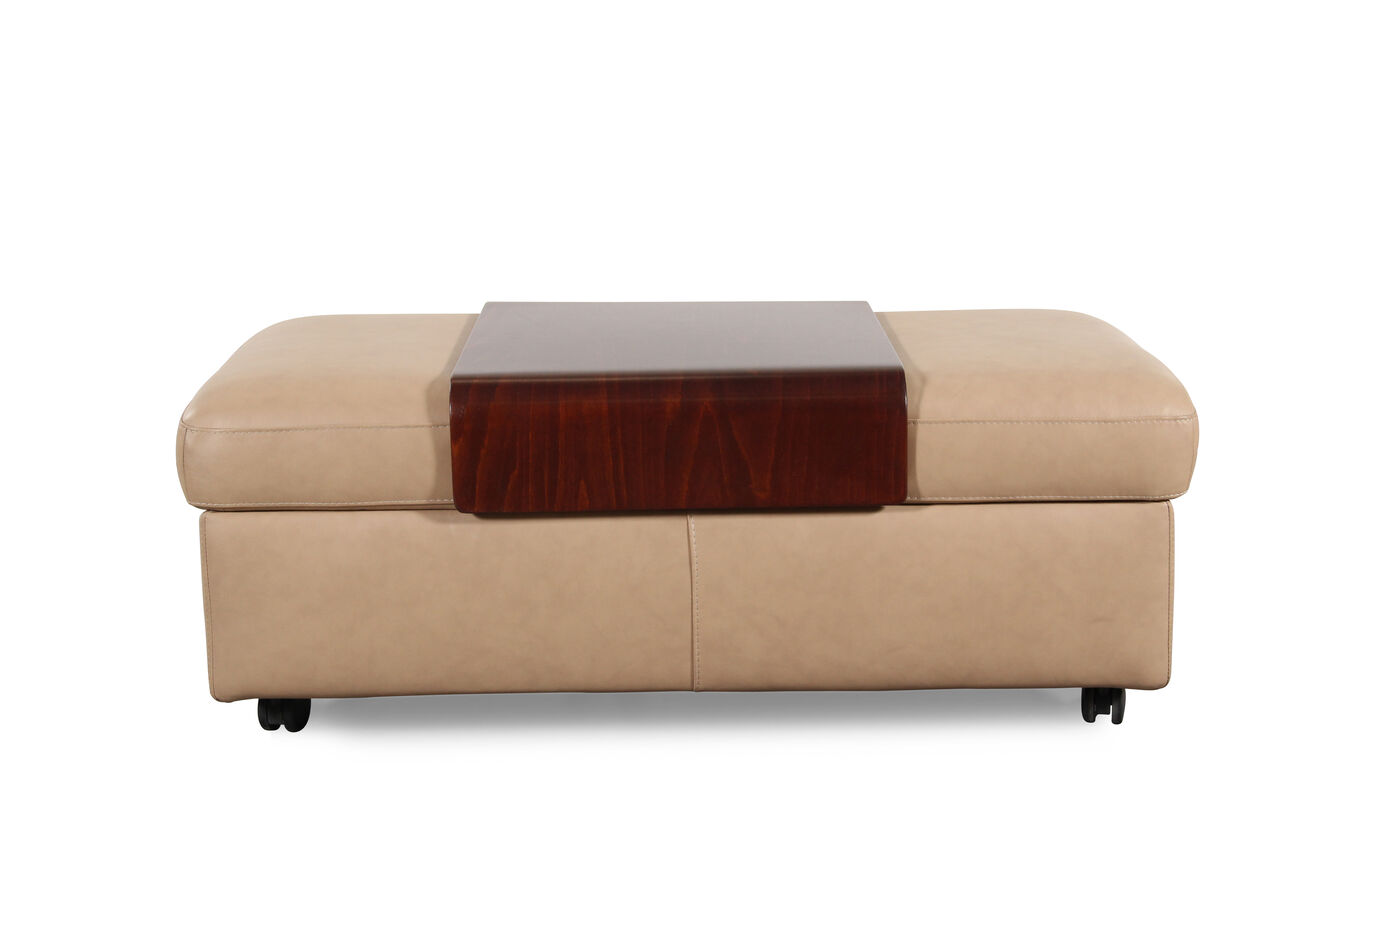 Stressless Furniture Mathis Brothers Furniture